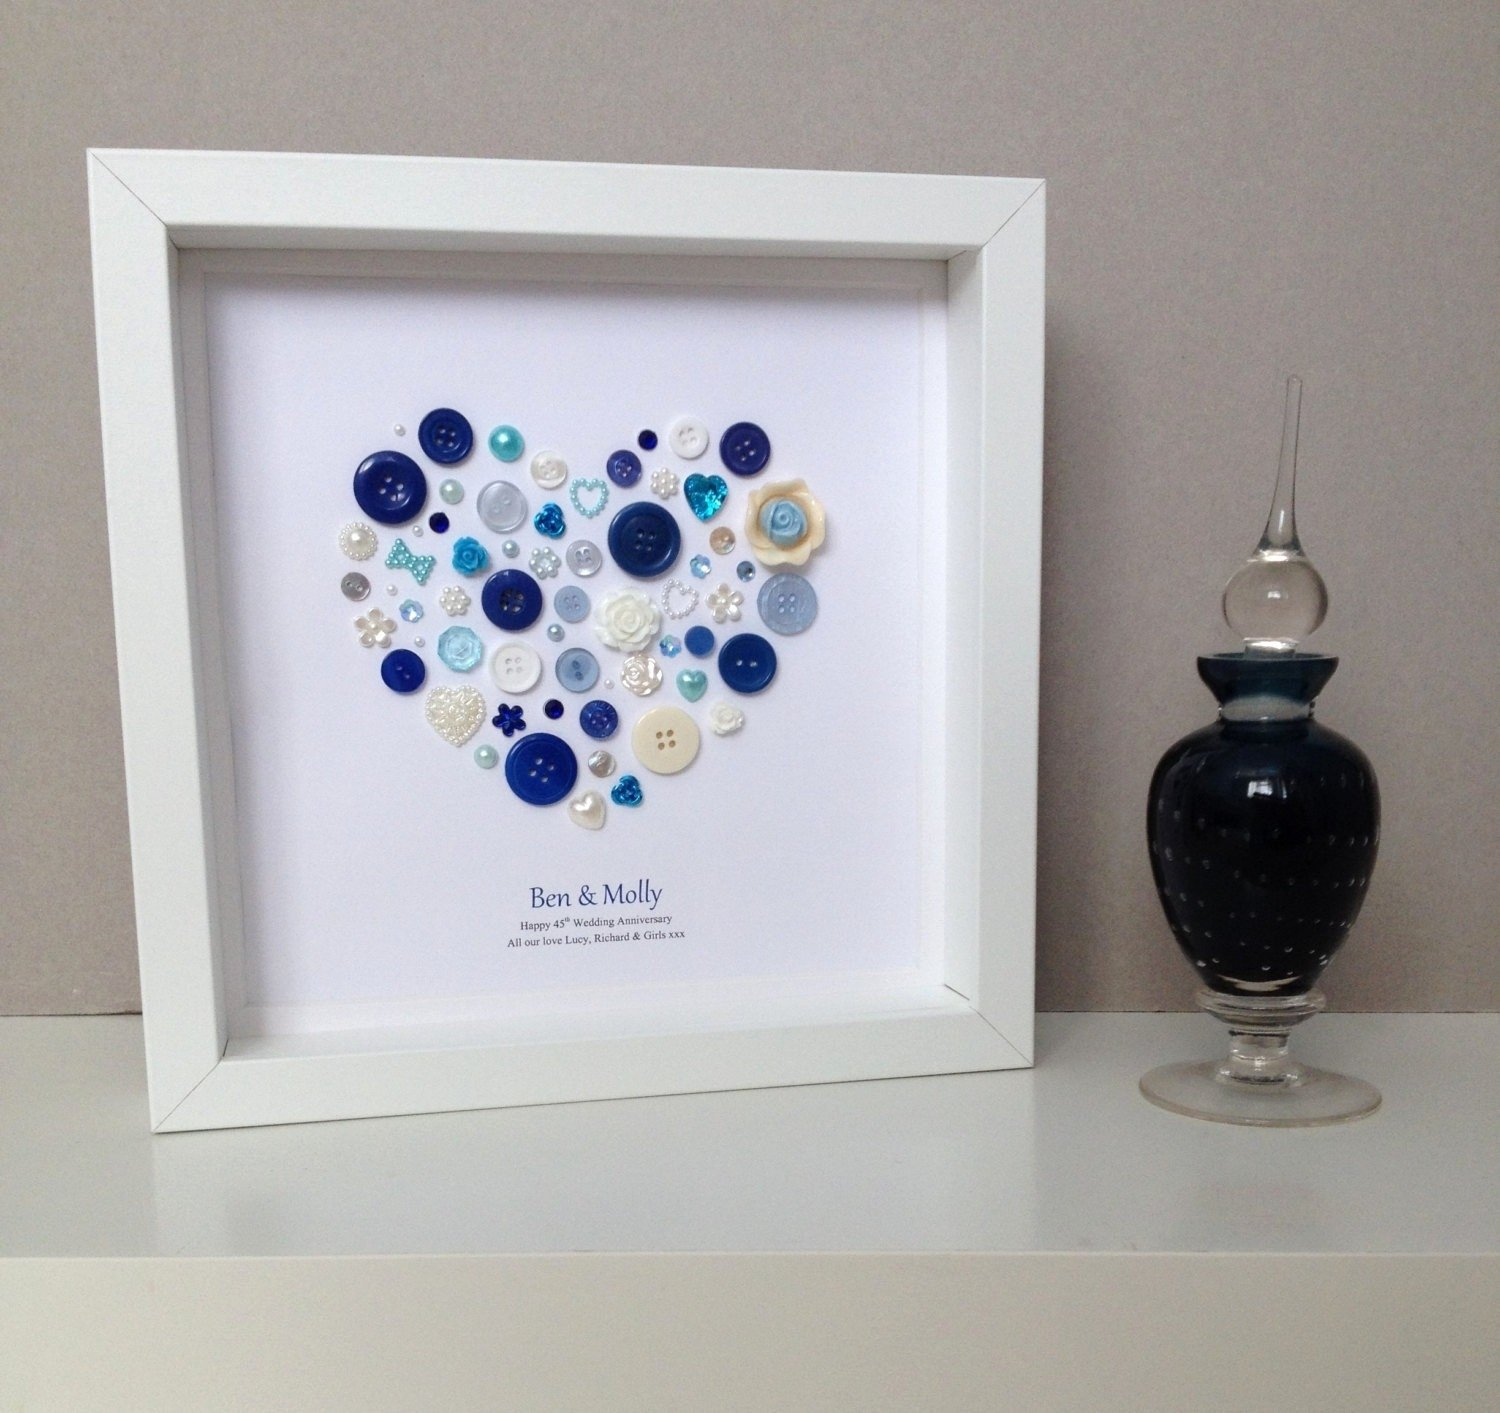 10 Awesome 45Th Wedding Anniversary Gift Ideas 45 wedding anniversary gift ideas lovely sapphire wedding